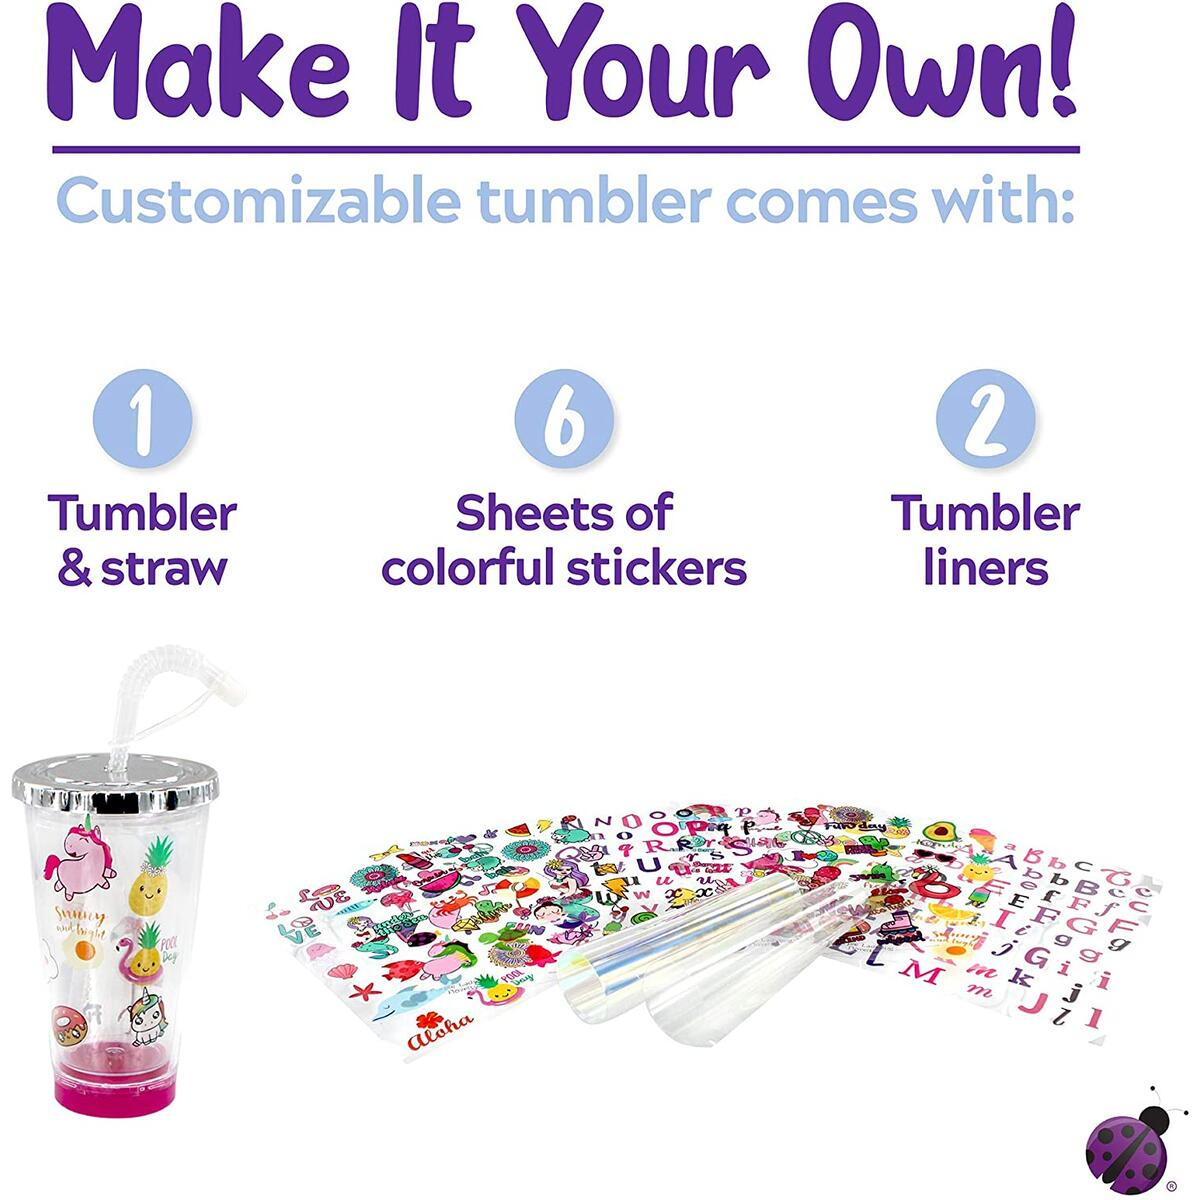 Purple Ladybug Create Your Own Personalized Tumbler for Girls with Cute Tumbler Stickers! BPA Free Kids Tumbler with Lid & Straw - Great Gift Idea for Girl, Fun DIY Arts and Crafts Kit for Children!